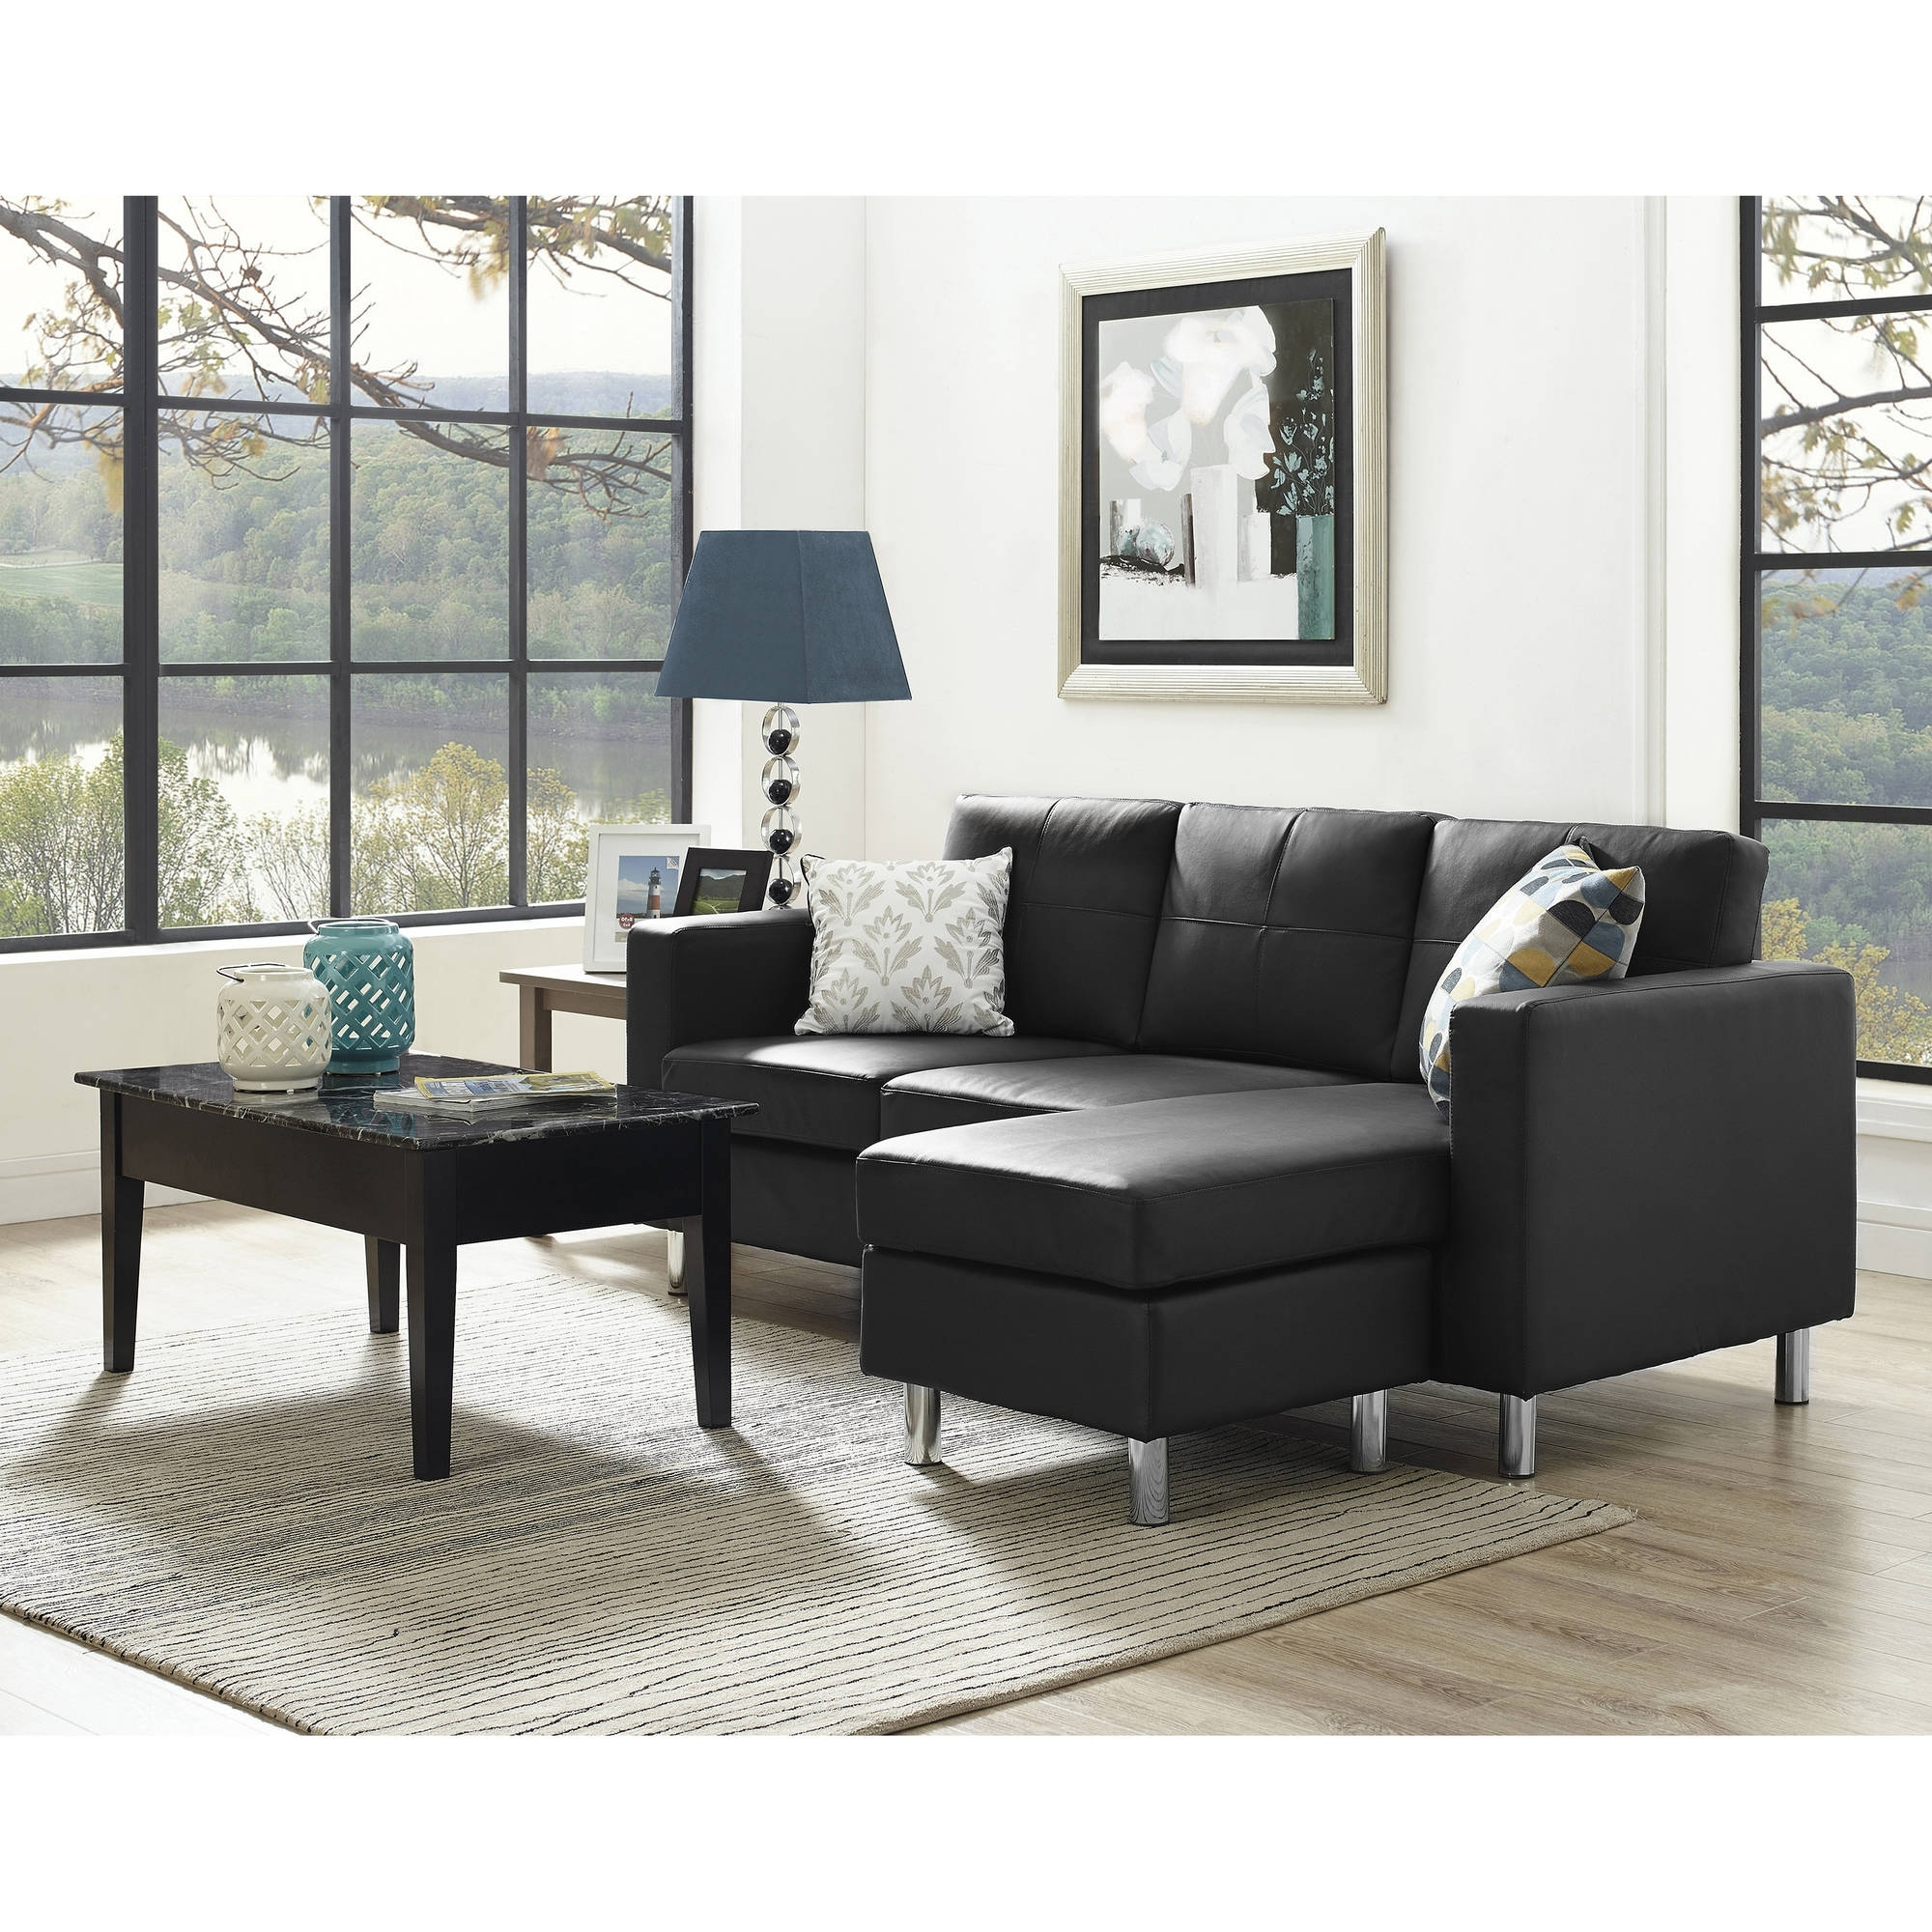 Favorite Choice Throughout Small Sectional Sofas (View 5 of 15)